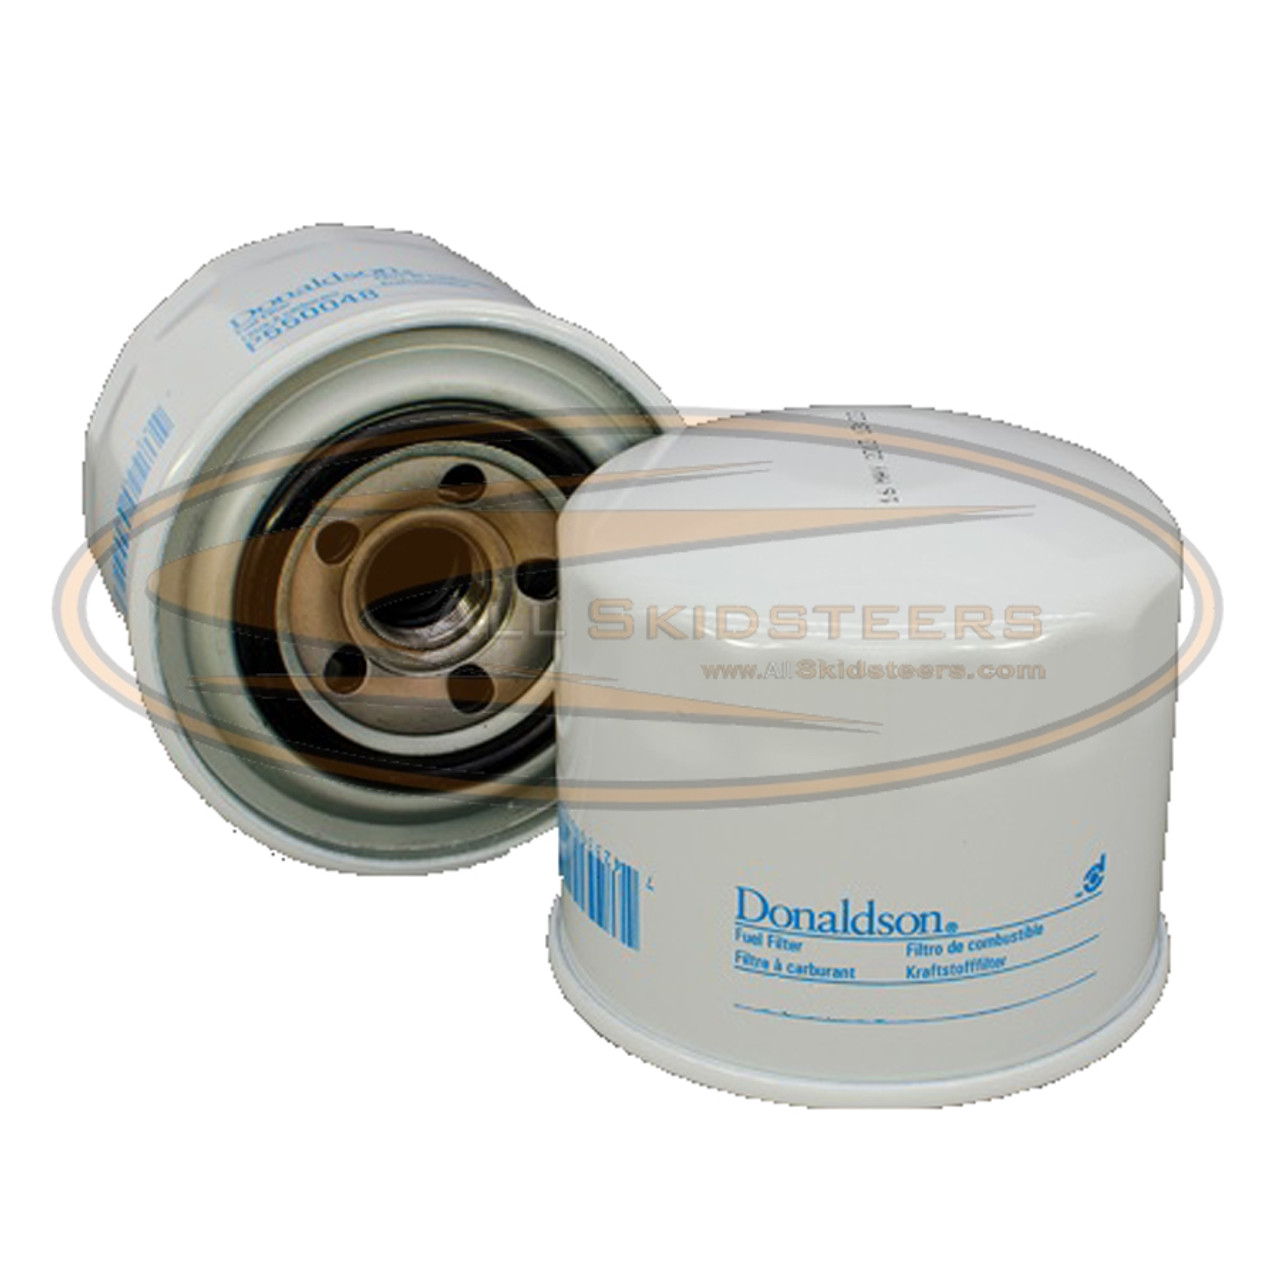 fuel filter for takeuchi replaces oem y129150 35152 alltakeuchi filter inline fuel filter maintenance